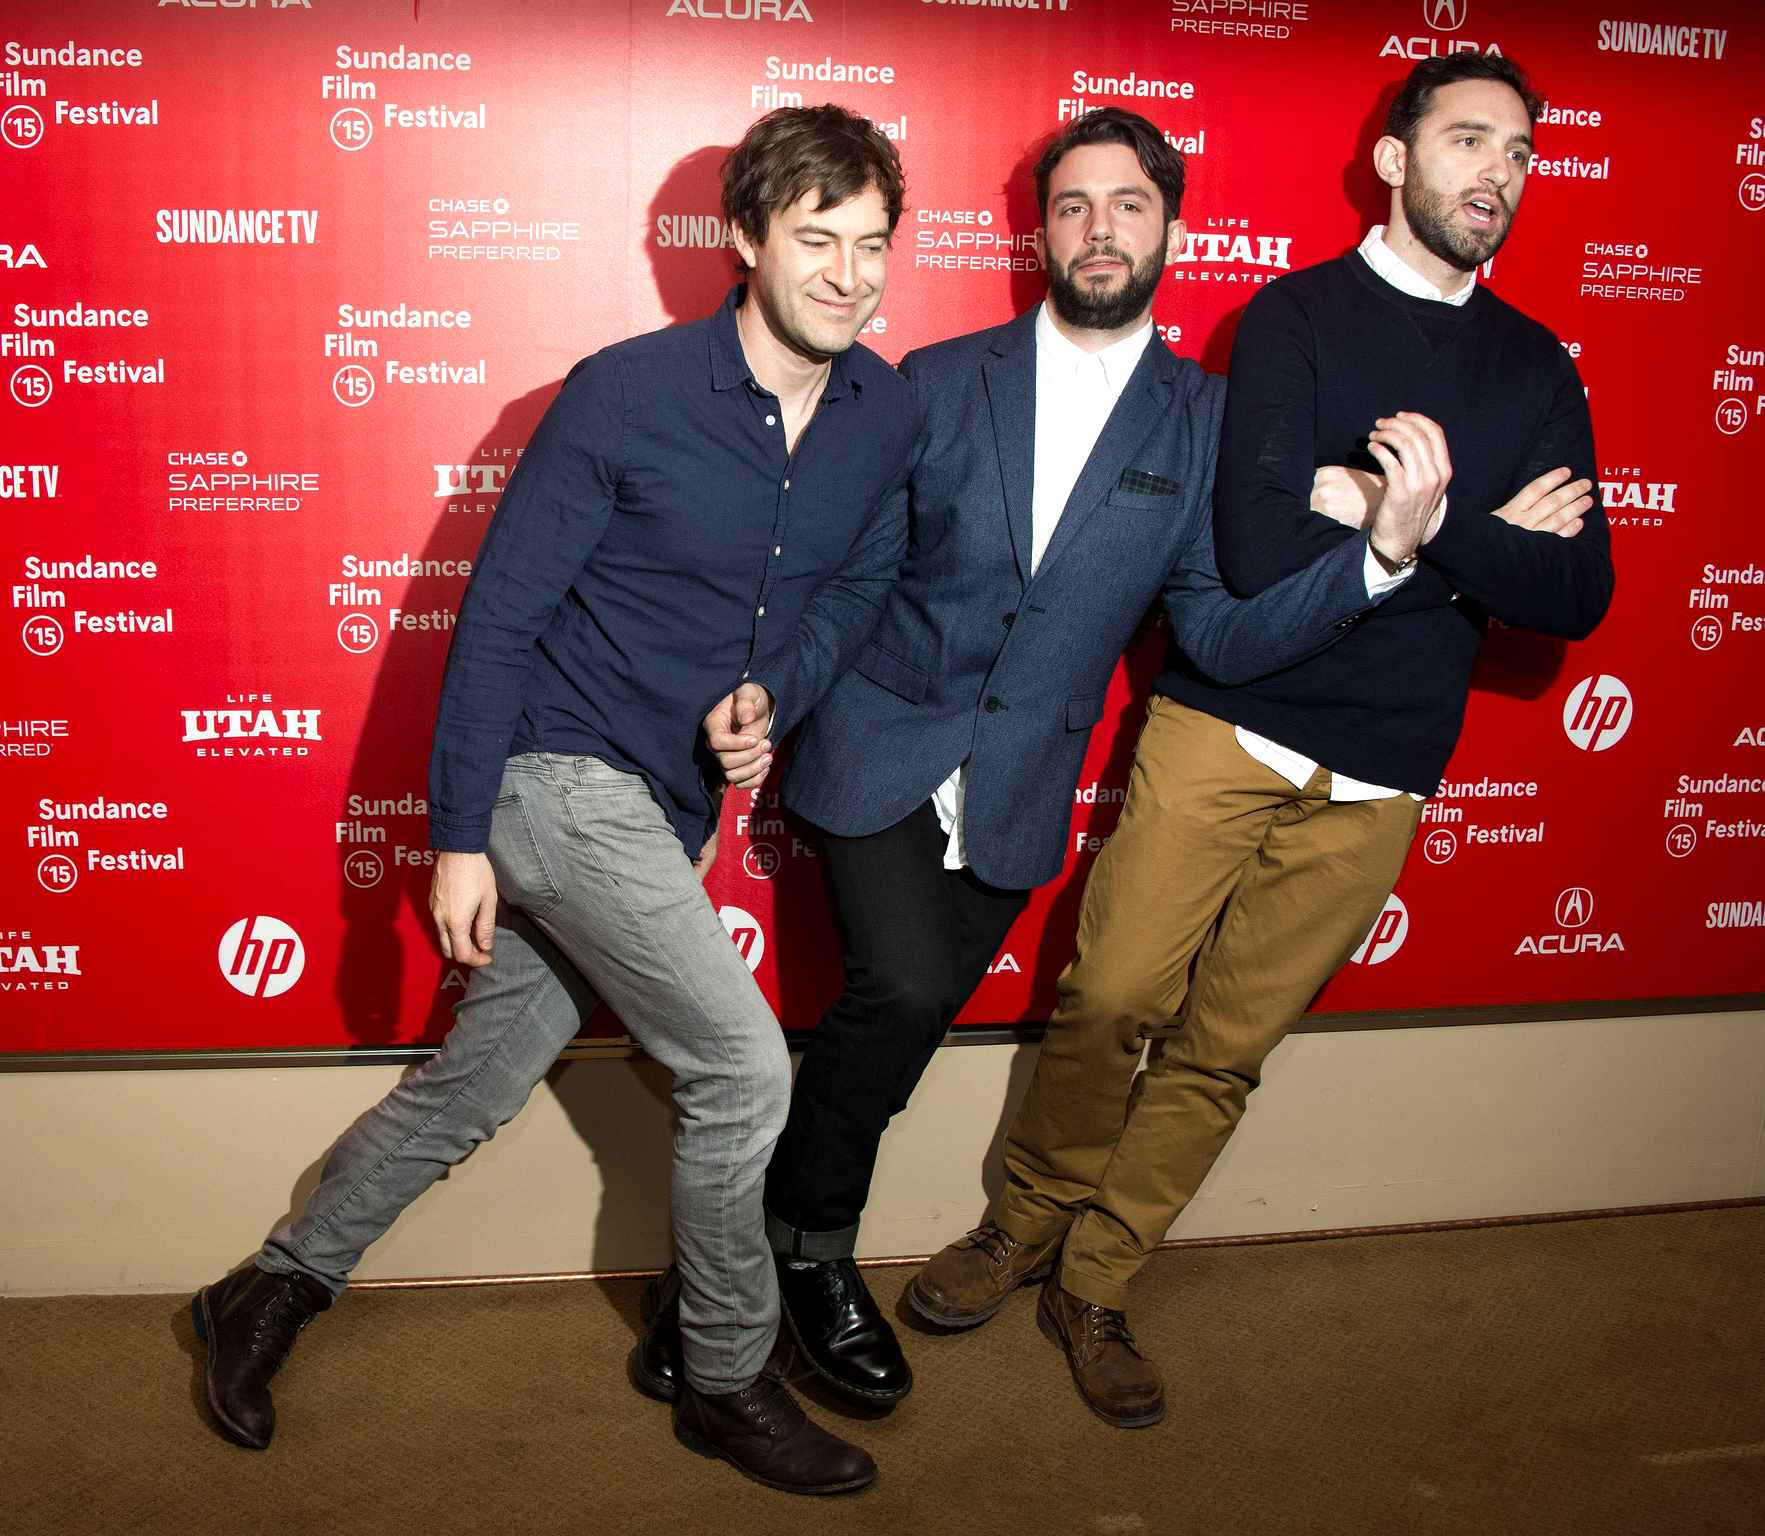 Phil Matarese, Mike Luciano with their mentor/Exec Producer Mark Duplass:  L. to R. Mark Duplass, Phil Matarese, Mike Luciano (Photo by Arthur Mola/Invision/AP)